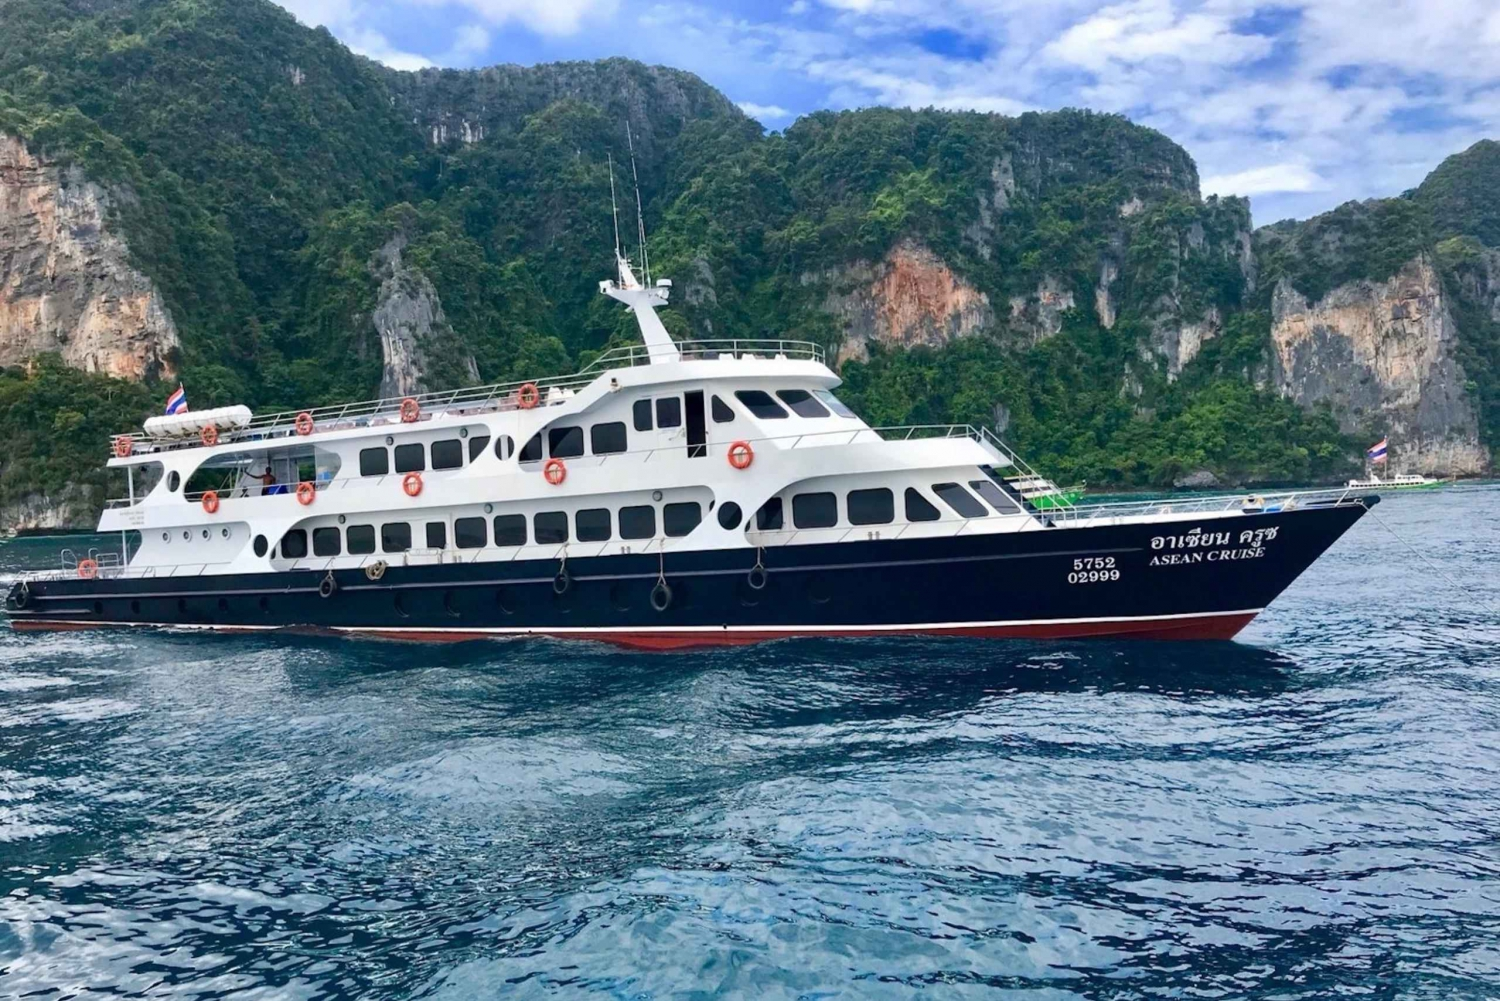 Ferry Transfer Between Phuket and Koh Phi Phi